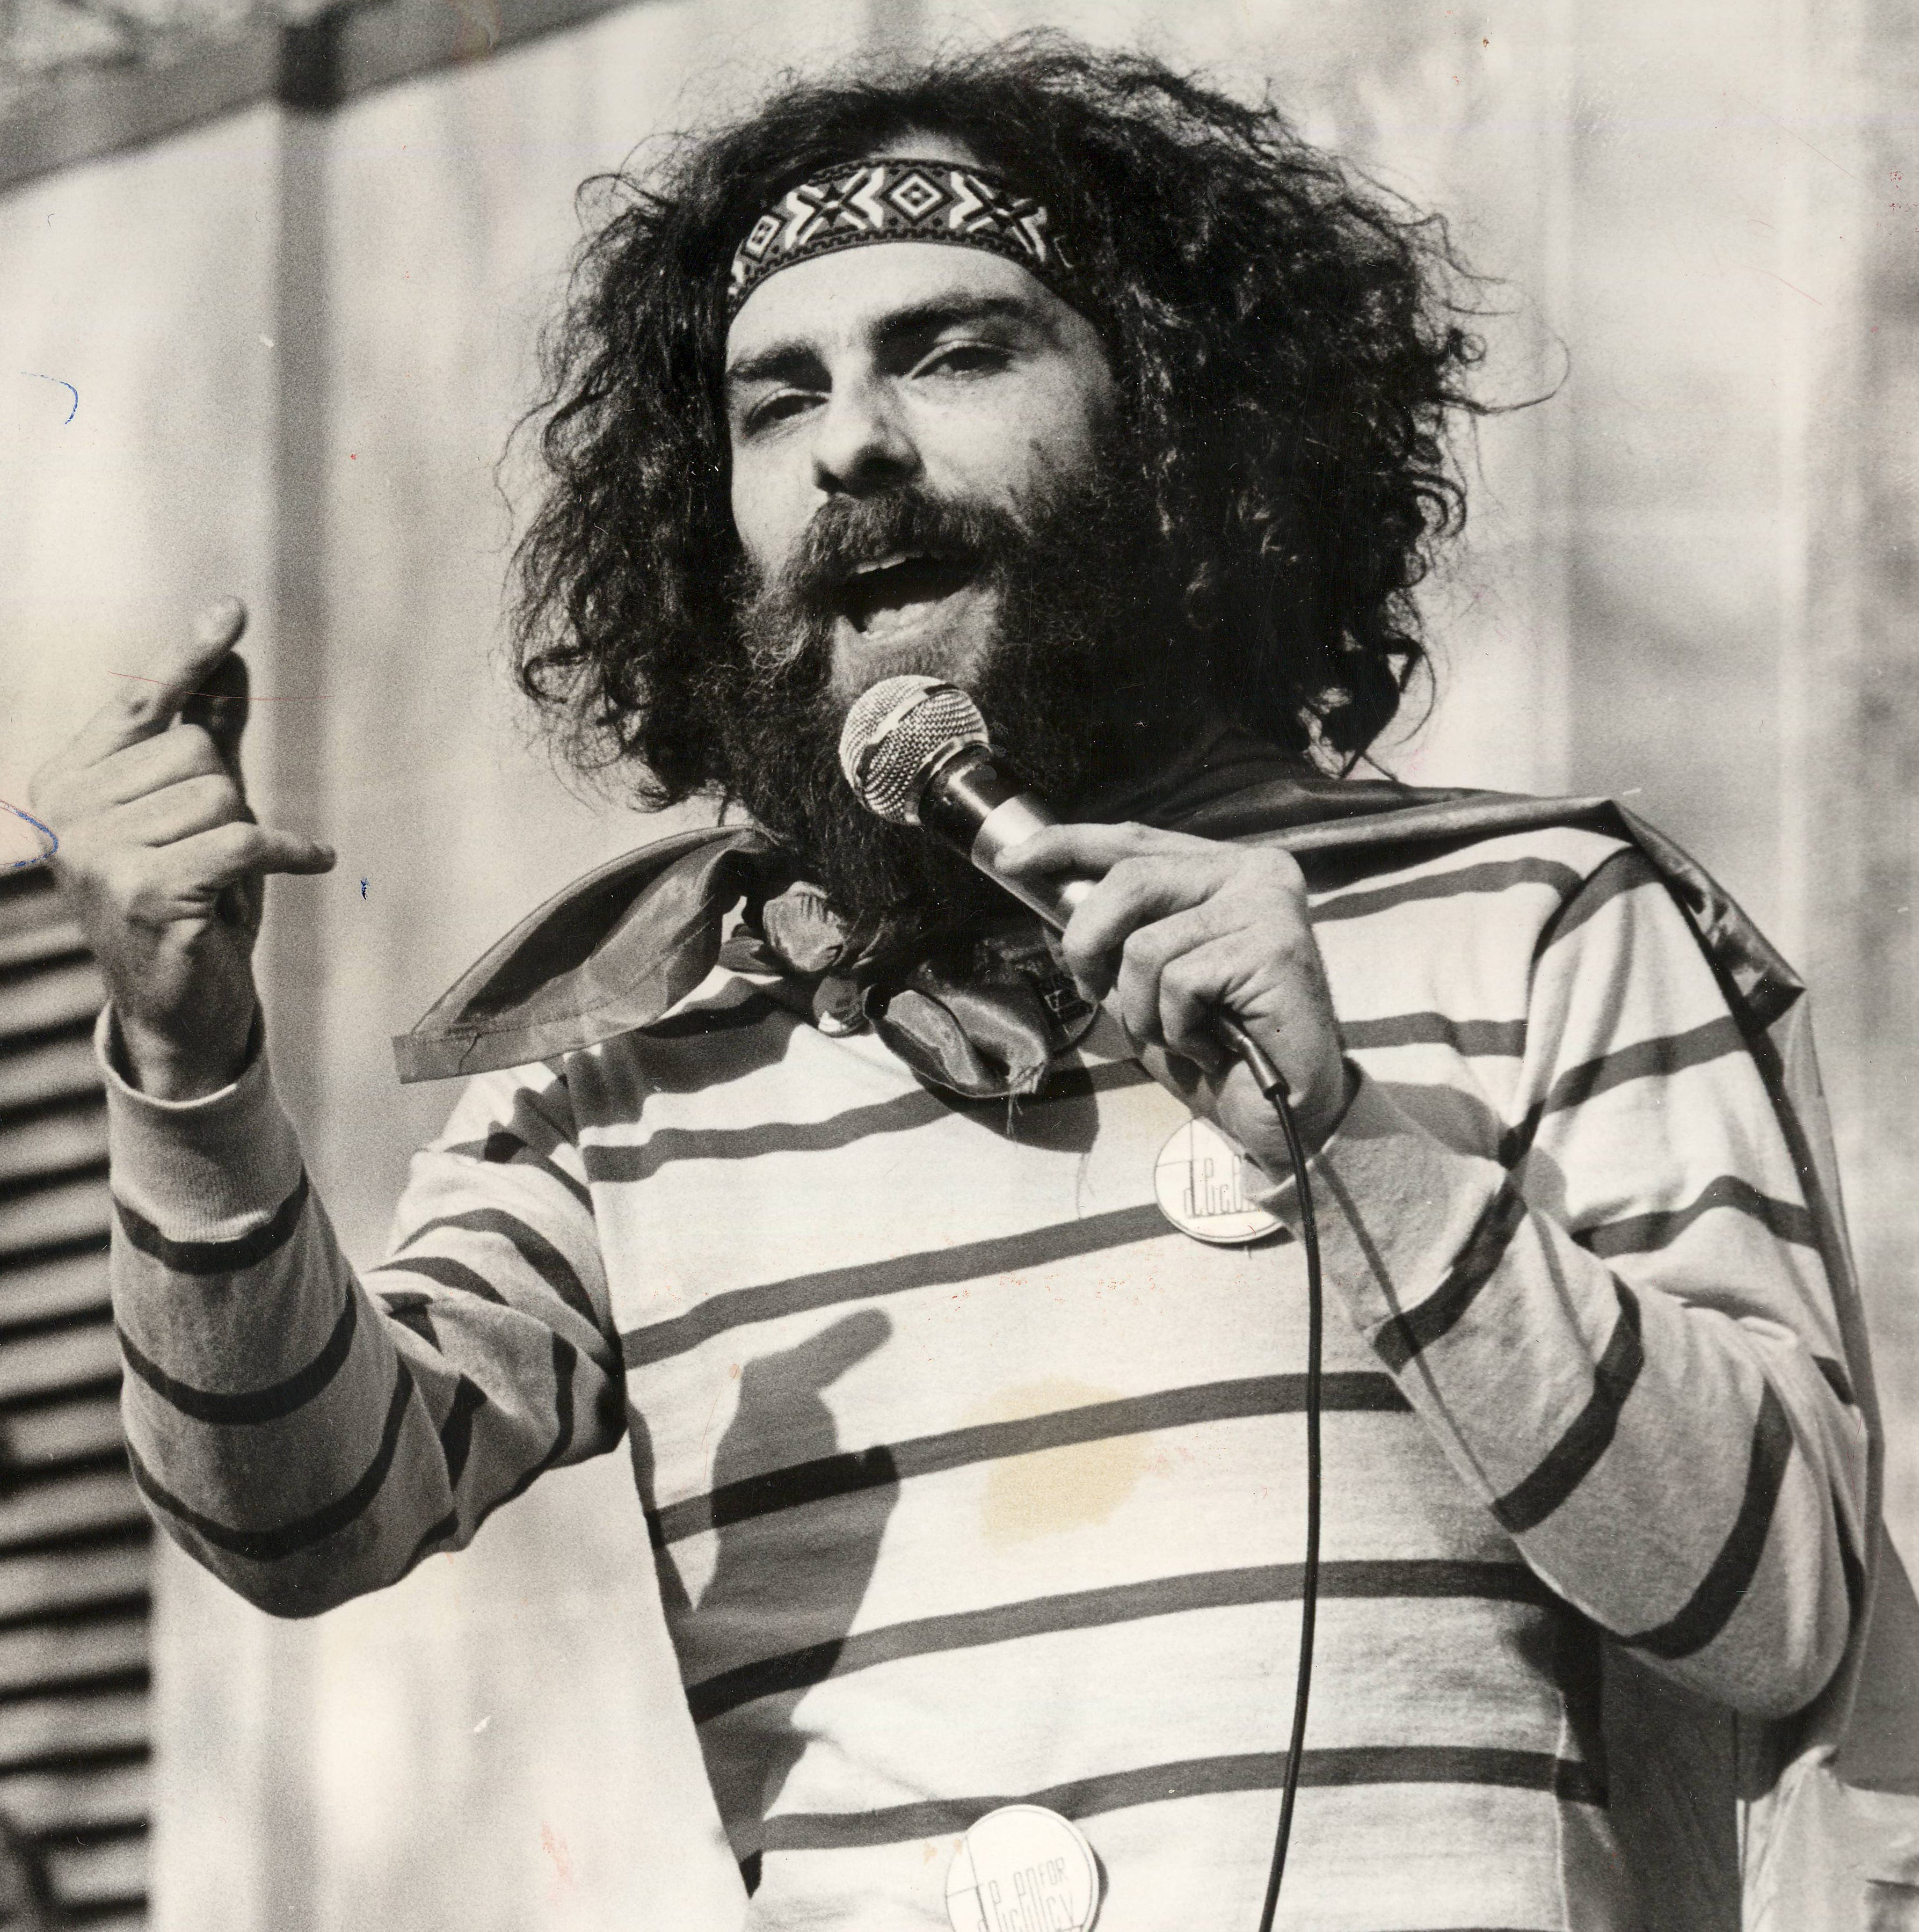 Our history: 1960s radical Jerry Rubin was a showman